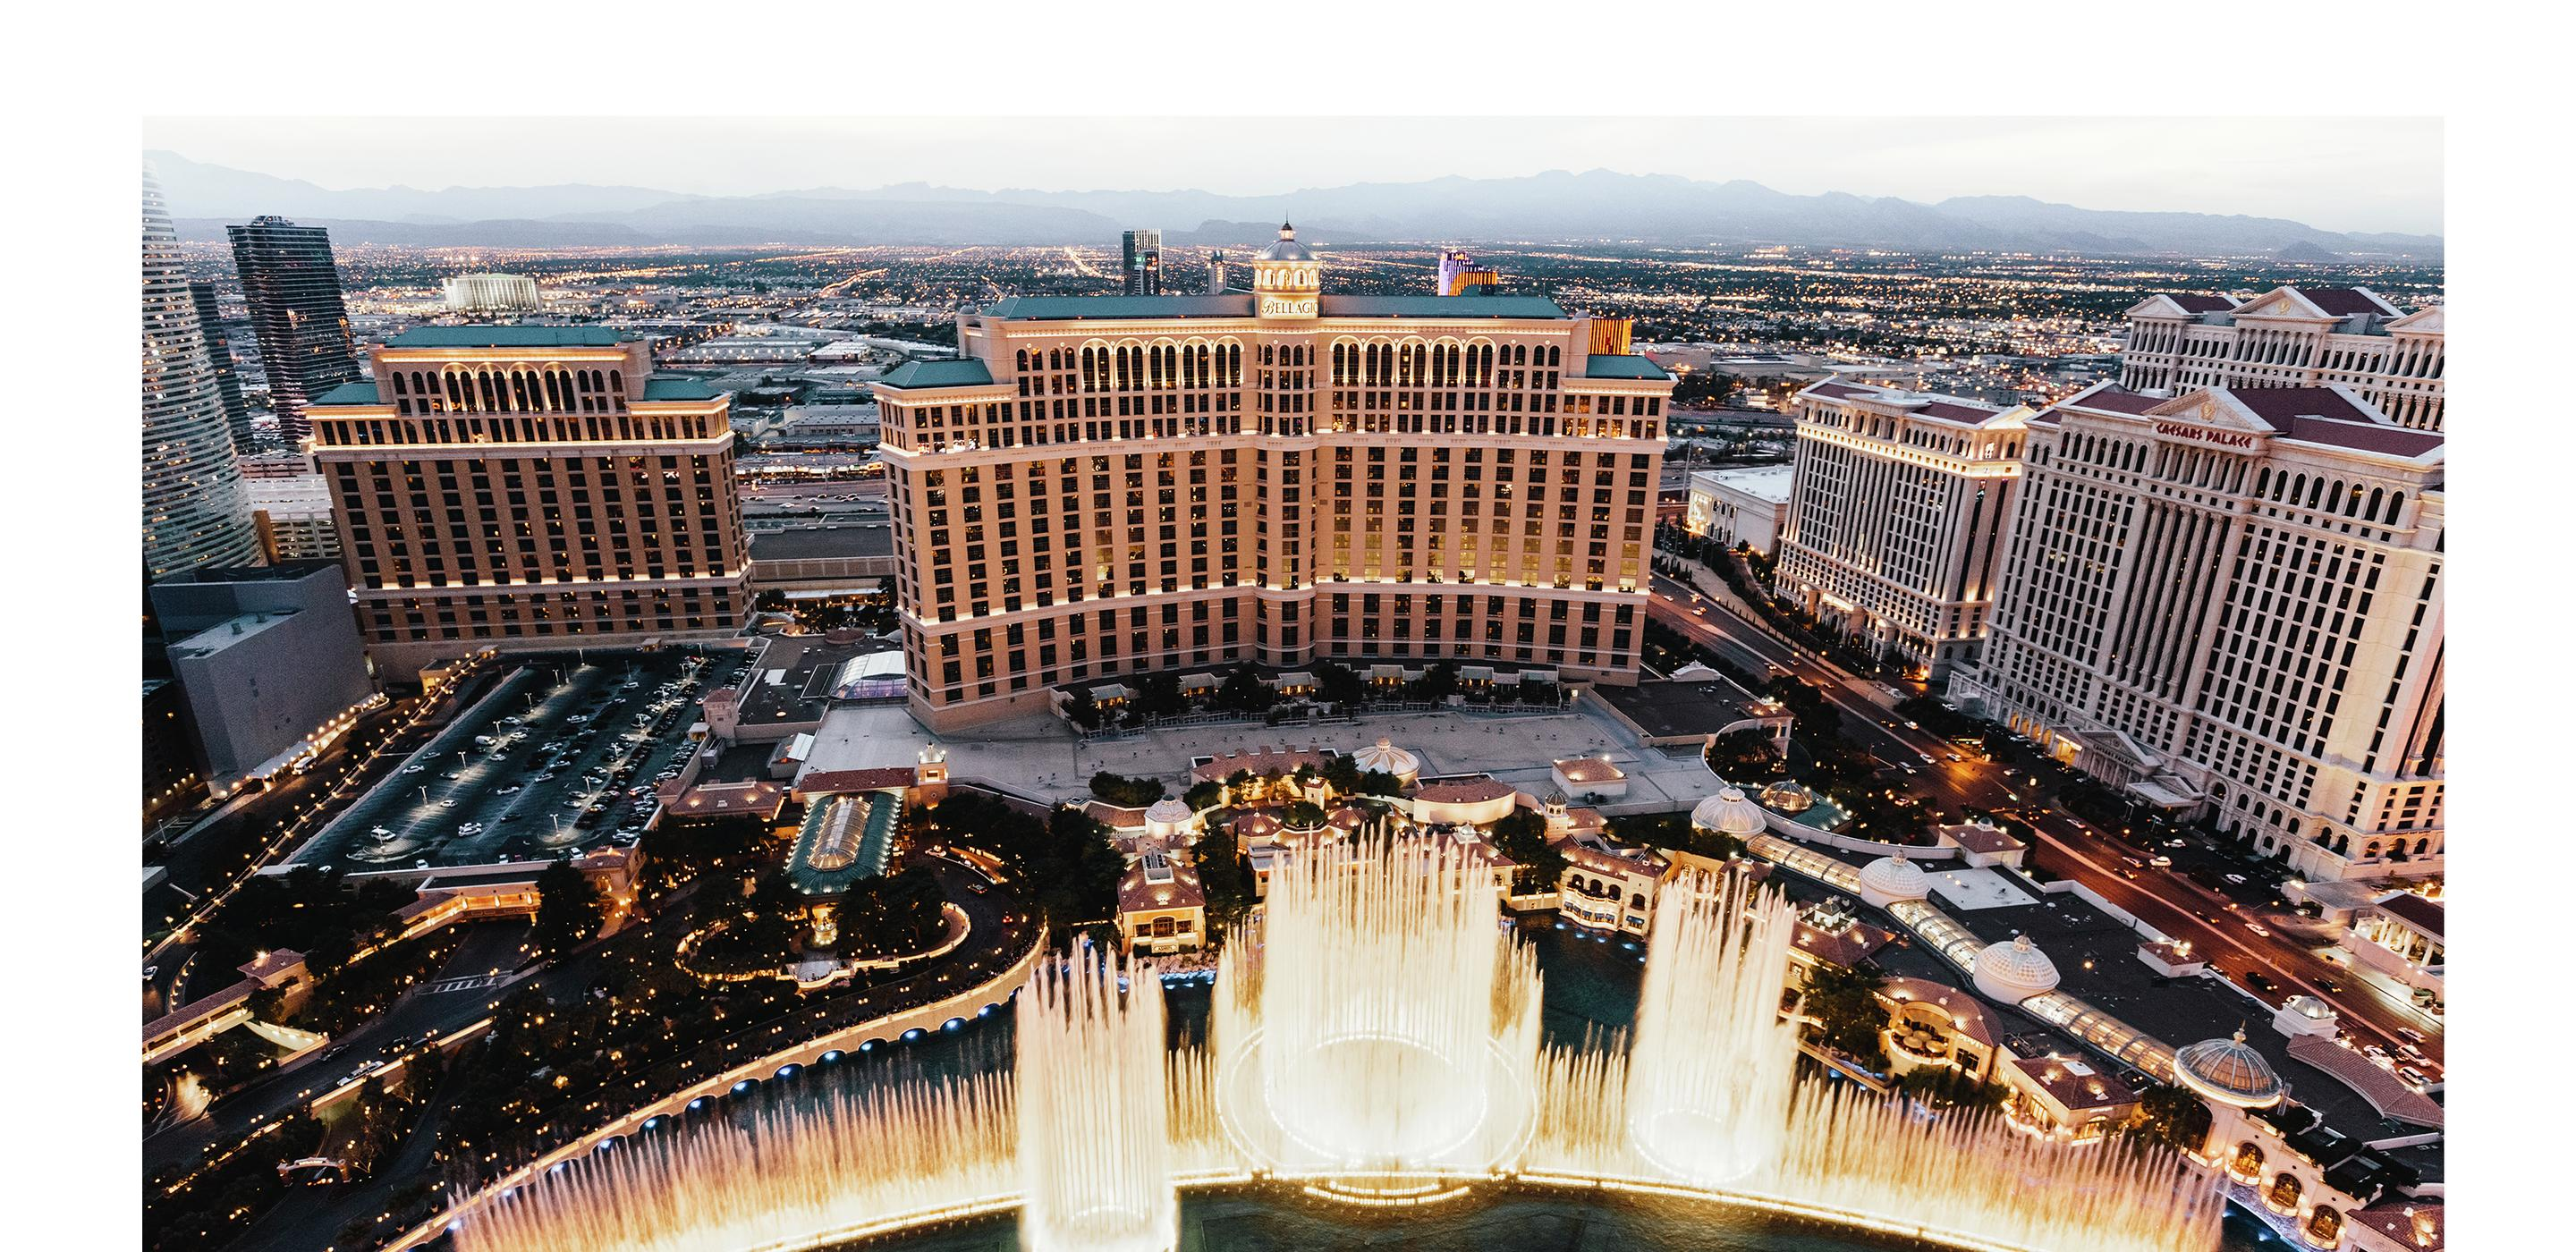 Self Parking & Valet Parking - Bellagio Hotel & Casino